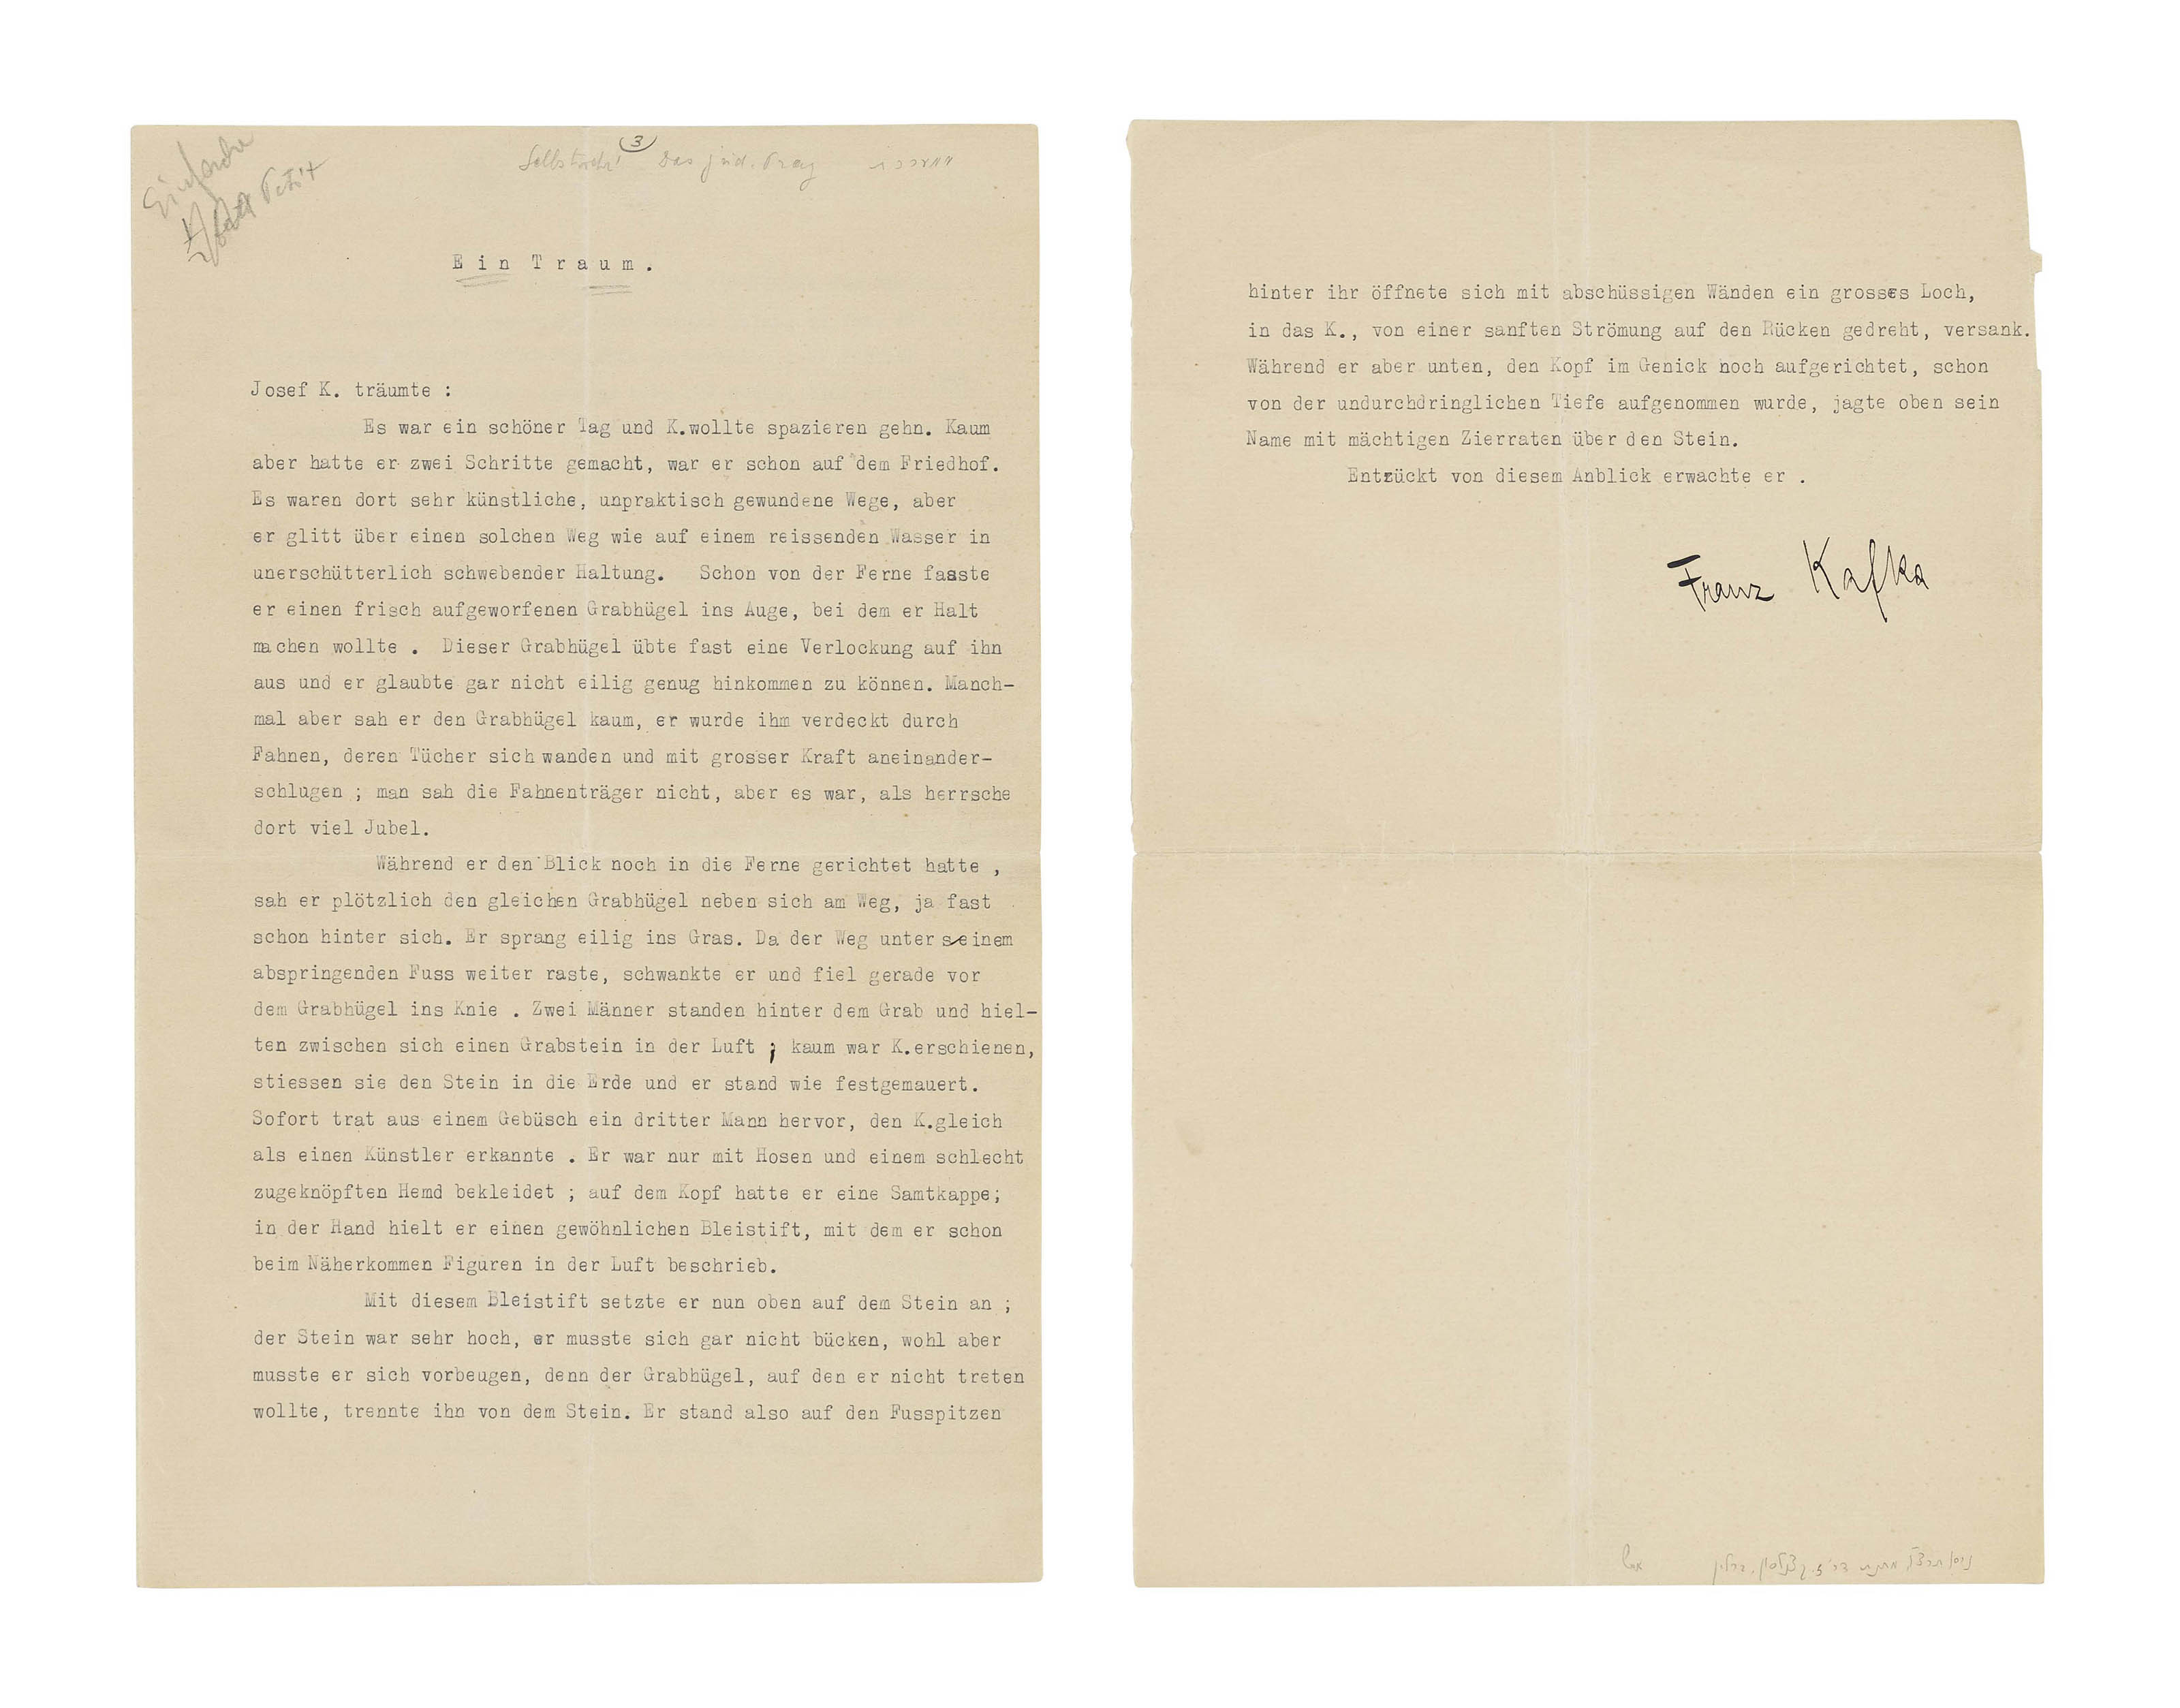 KAFKA, Franz (1883-1924). Typescript signed ('Franz Kafka') of his short story 'Ein Traum' [A Dream], [Prague, 1916], six typographical emendations in autograph, including the insertion of the word 'und', 2½ pages, folio (338 x 211mm), on rectos only of a bifolium and a single sheet, printer's annotations ('Einfache   Petit'), numbered '3'in pencil at upper margin of p.1, with a note of the  publication by 'Selbstwehr. Das jüd[ische] Prag'. Provenance: Siegmund Kaznelson (1893-1959) -- presented to an unidentified collector by Kaznelson in Berlin, March/April 1936 (note in Hebrew at foot of manuscript) -- a distinguished Israeli collection.